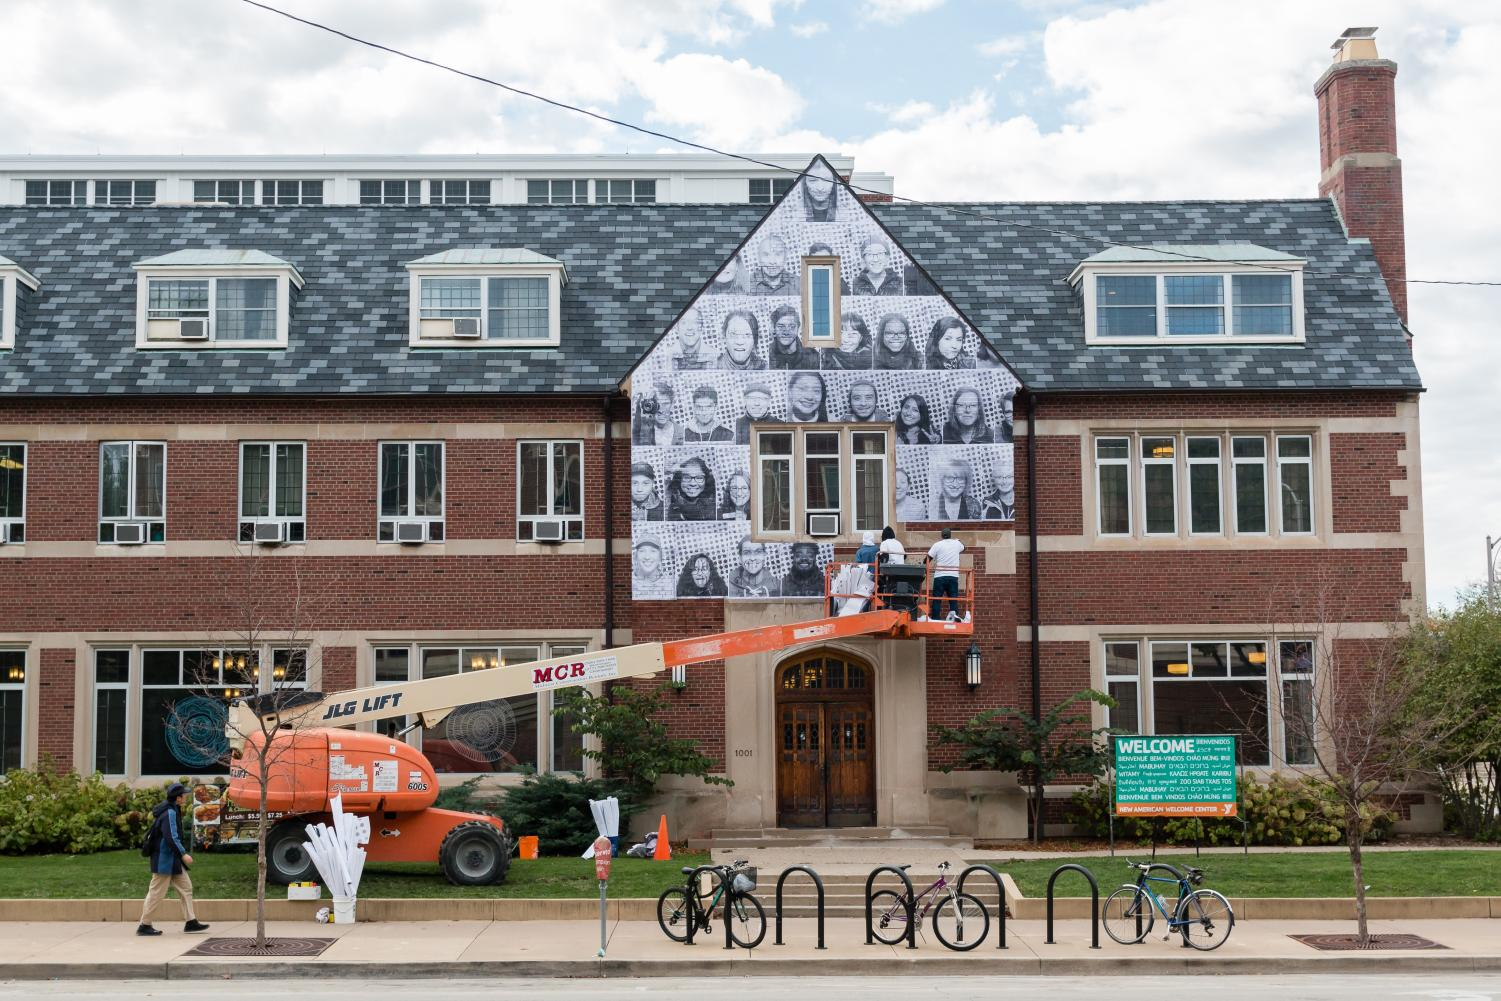 Spencer Shea, Basio Sema, and Joshua Geyer, workers for the French artist JR, put up photographs of University of Illinois students and Champaign-Urbana residents on the side of the University YMCA building at 1001 South Wright St. on Wednesday, Oct. 25, 2017. The pictures are part of an international art project called Inside Out that supports immigrants and dreamers.